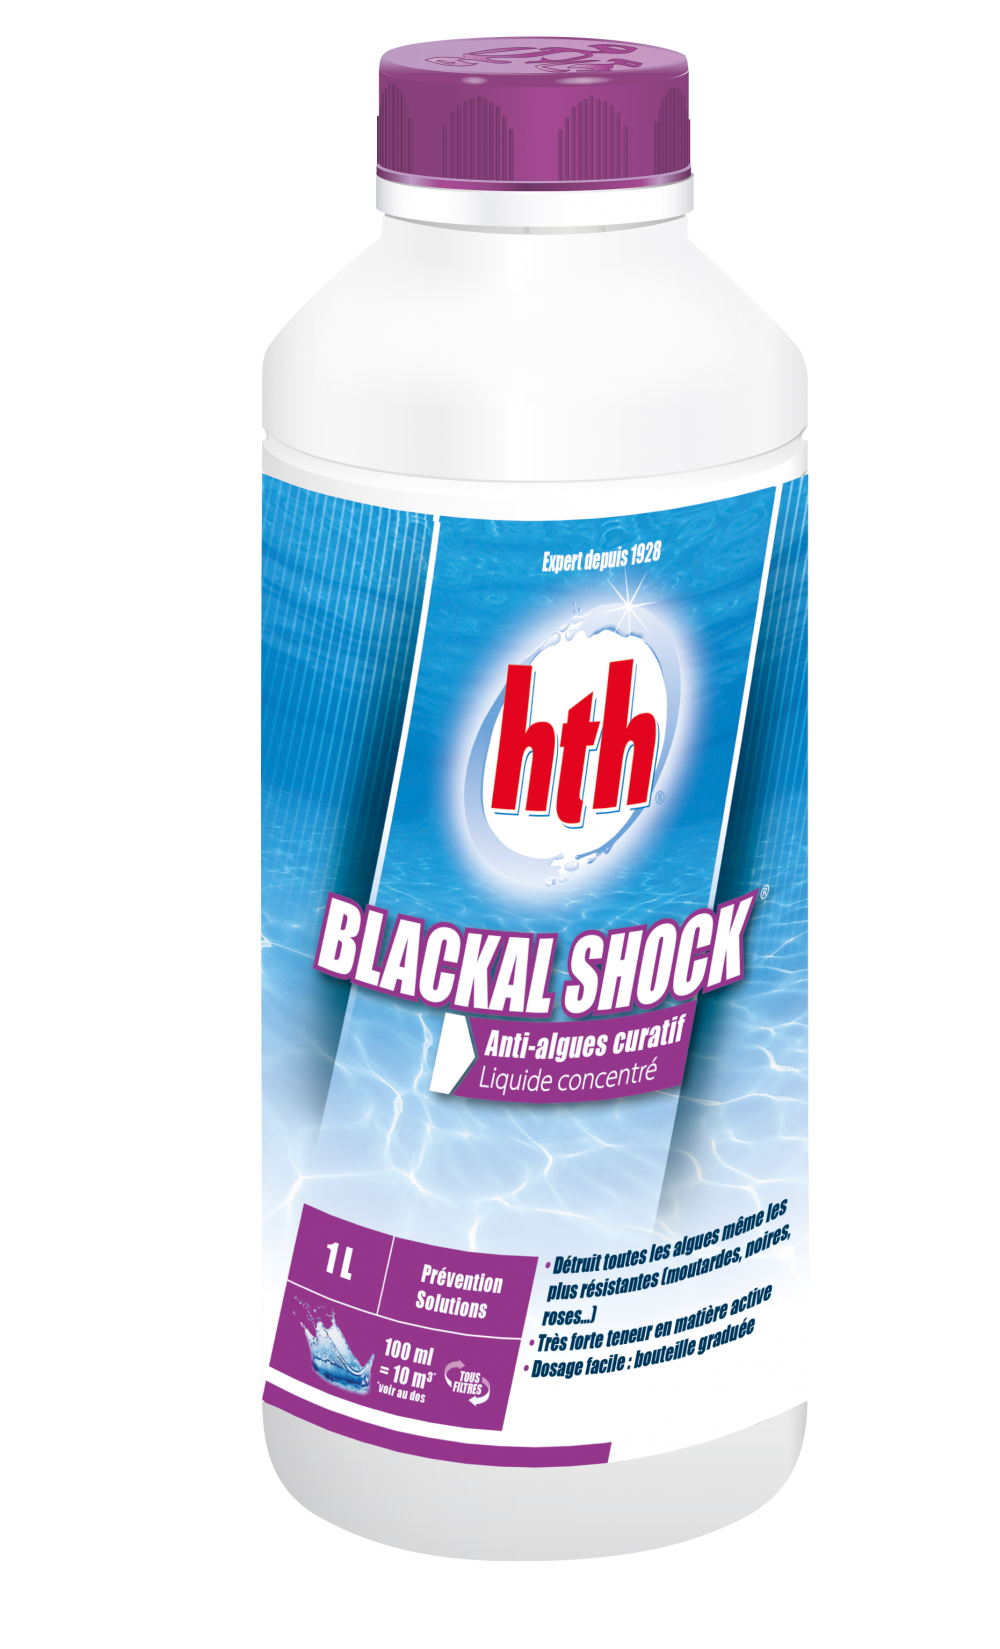 hth blackal shock